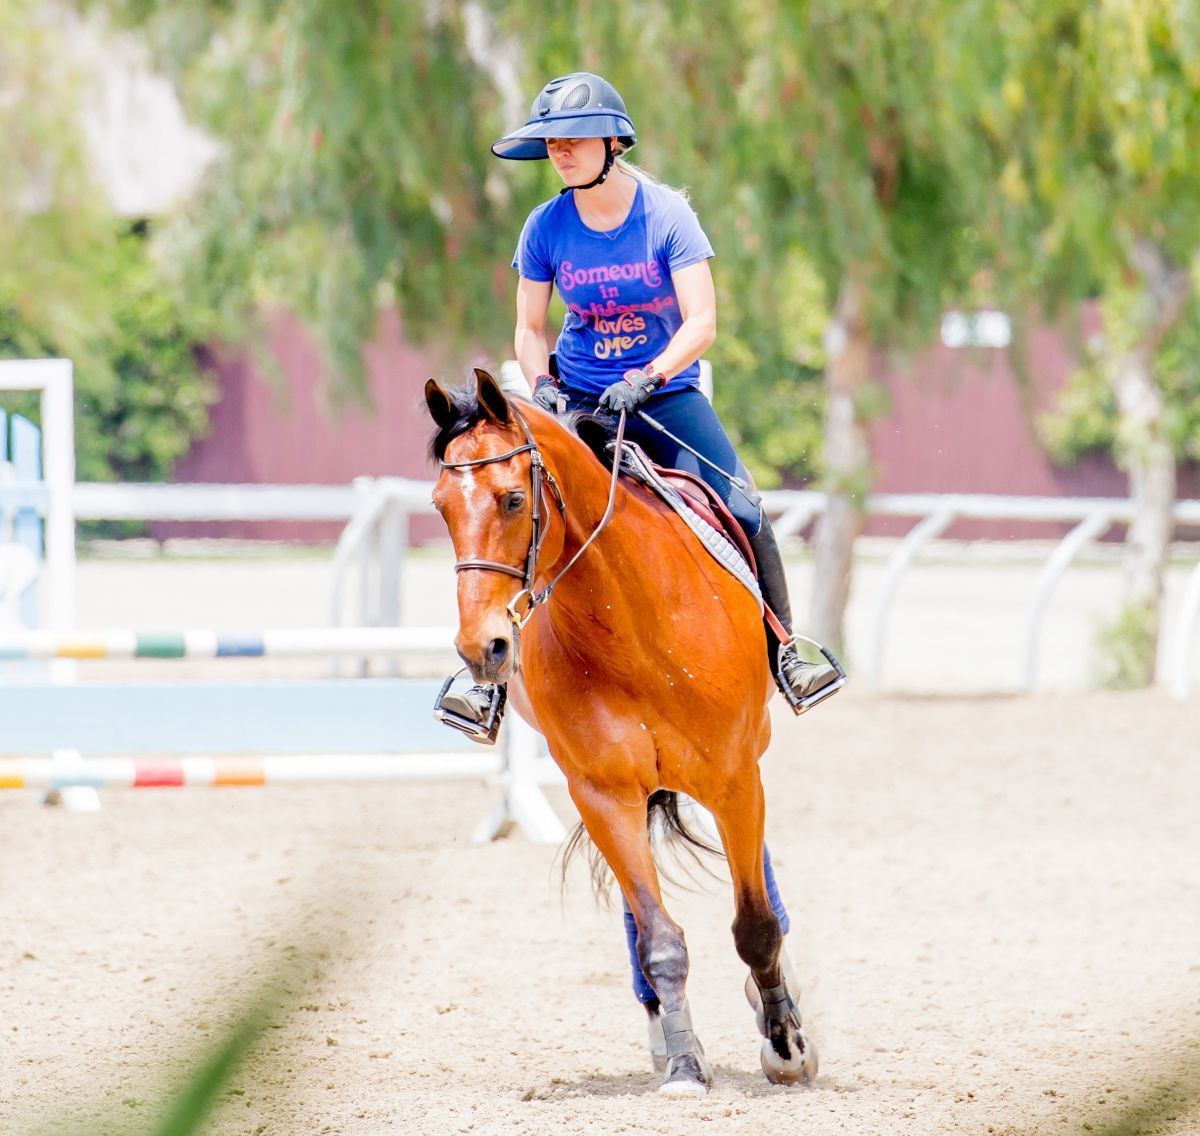 KALEY CUOCO at ... Los Angeles Horseback Riding